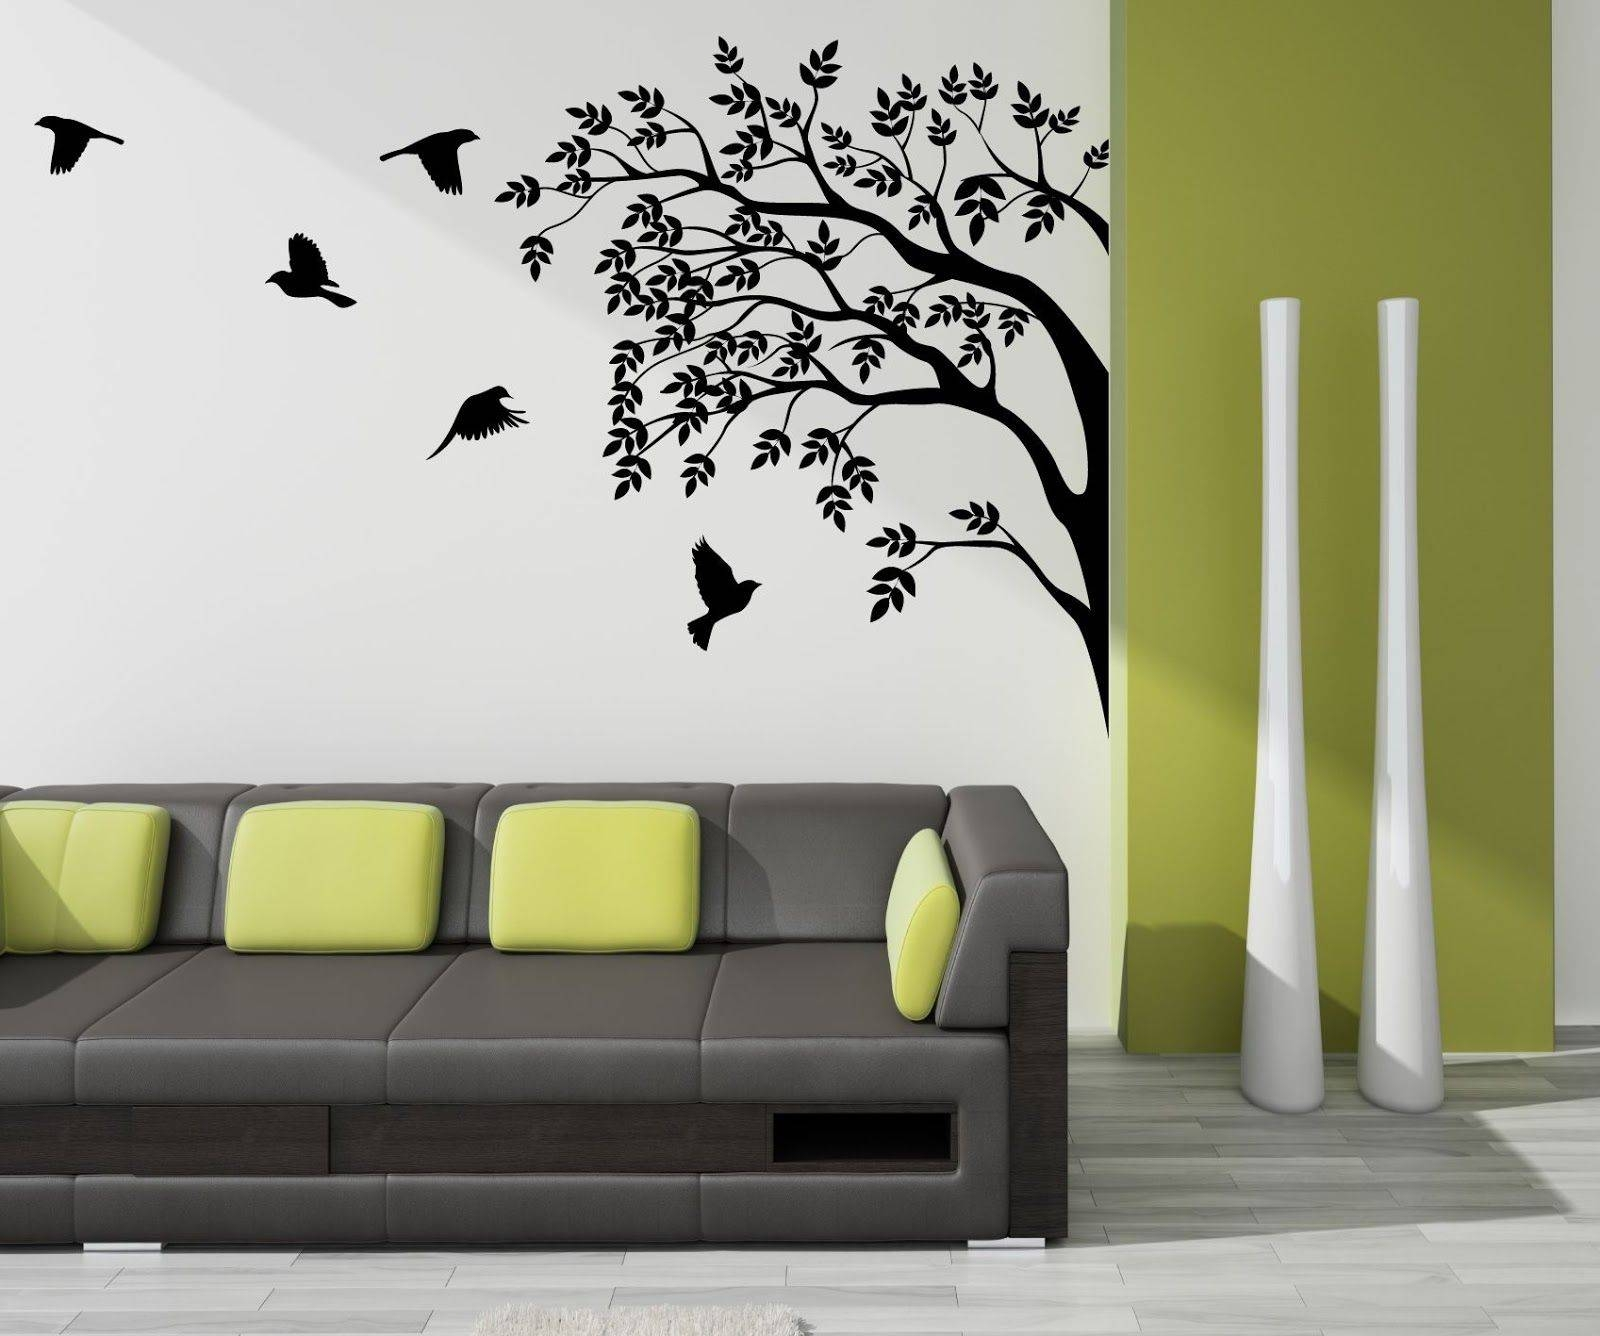 Home Design Ideas Bangalore: 20 Best Bangalore 3D Wall Art